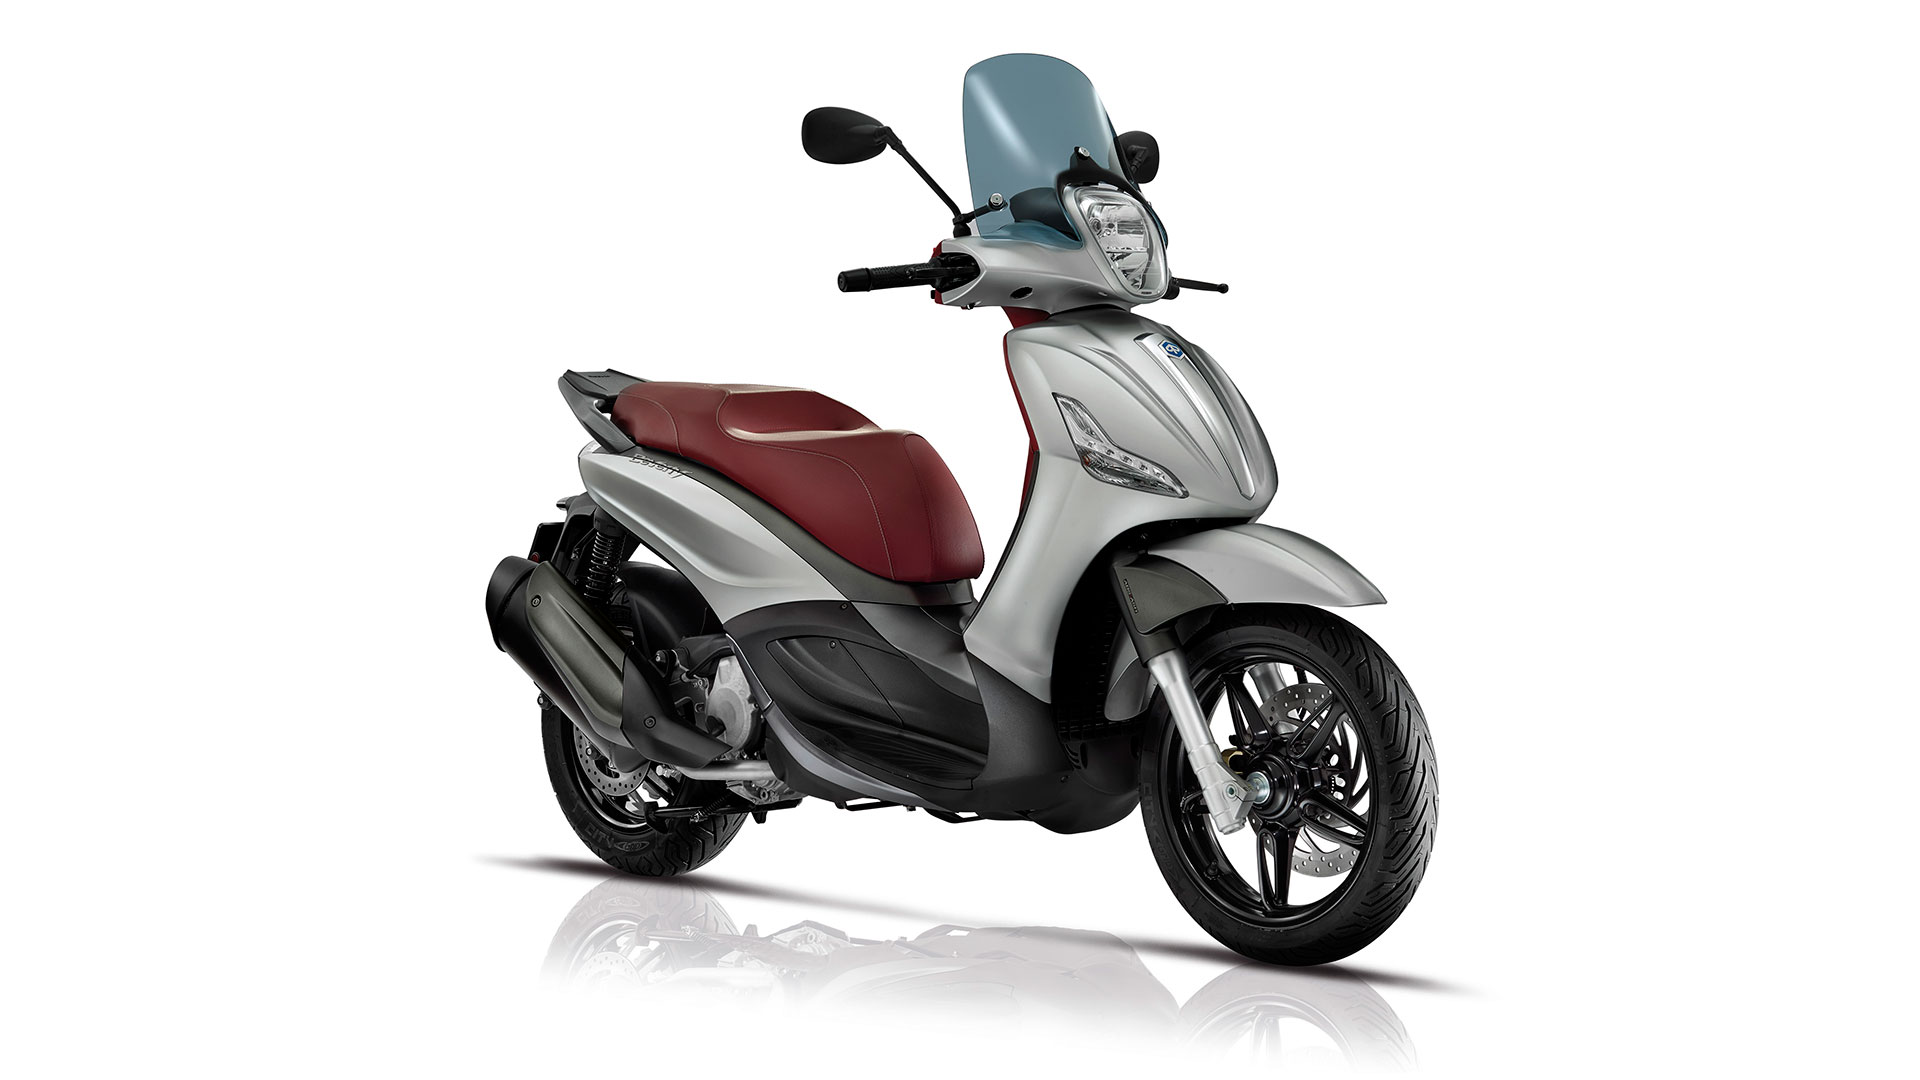 Achat Piaggio Beverly Sport touring ABS-ASR 350 cm3 neuf à Nice chez Scoot Center-1